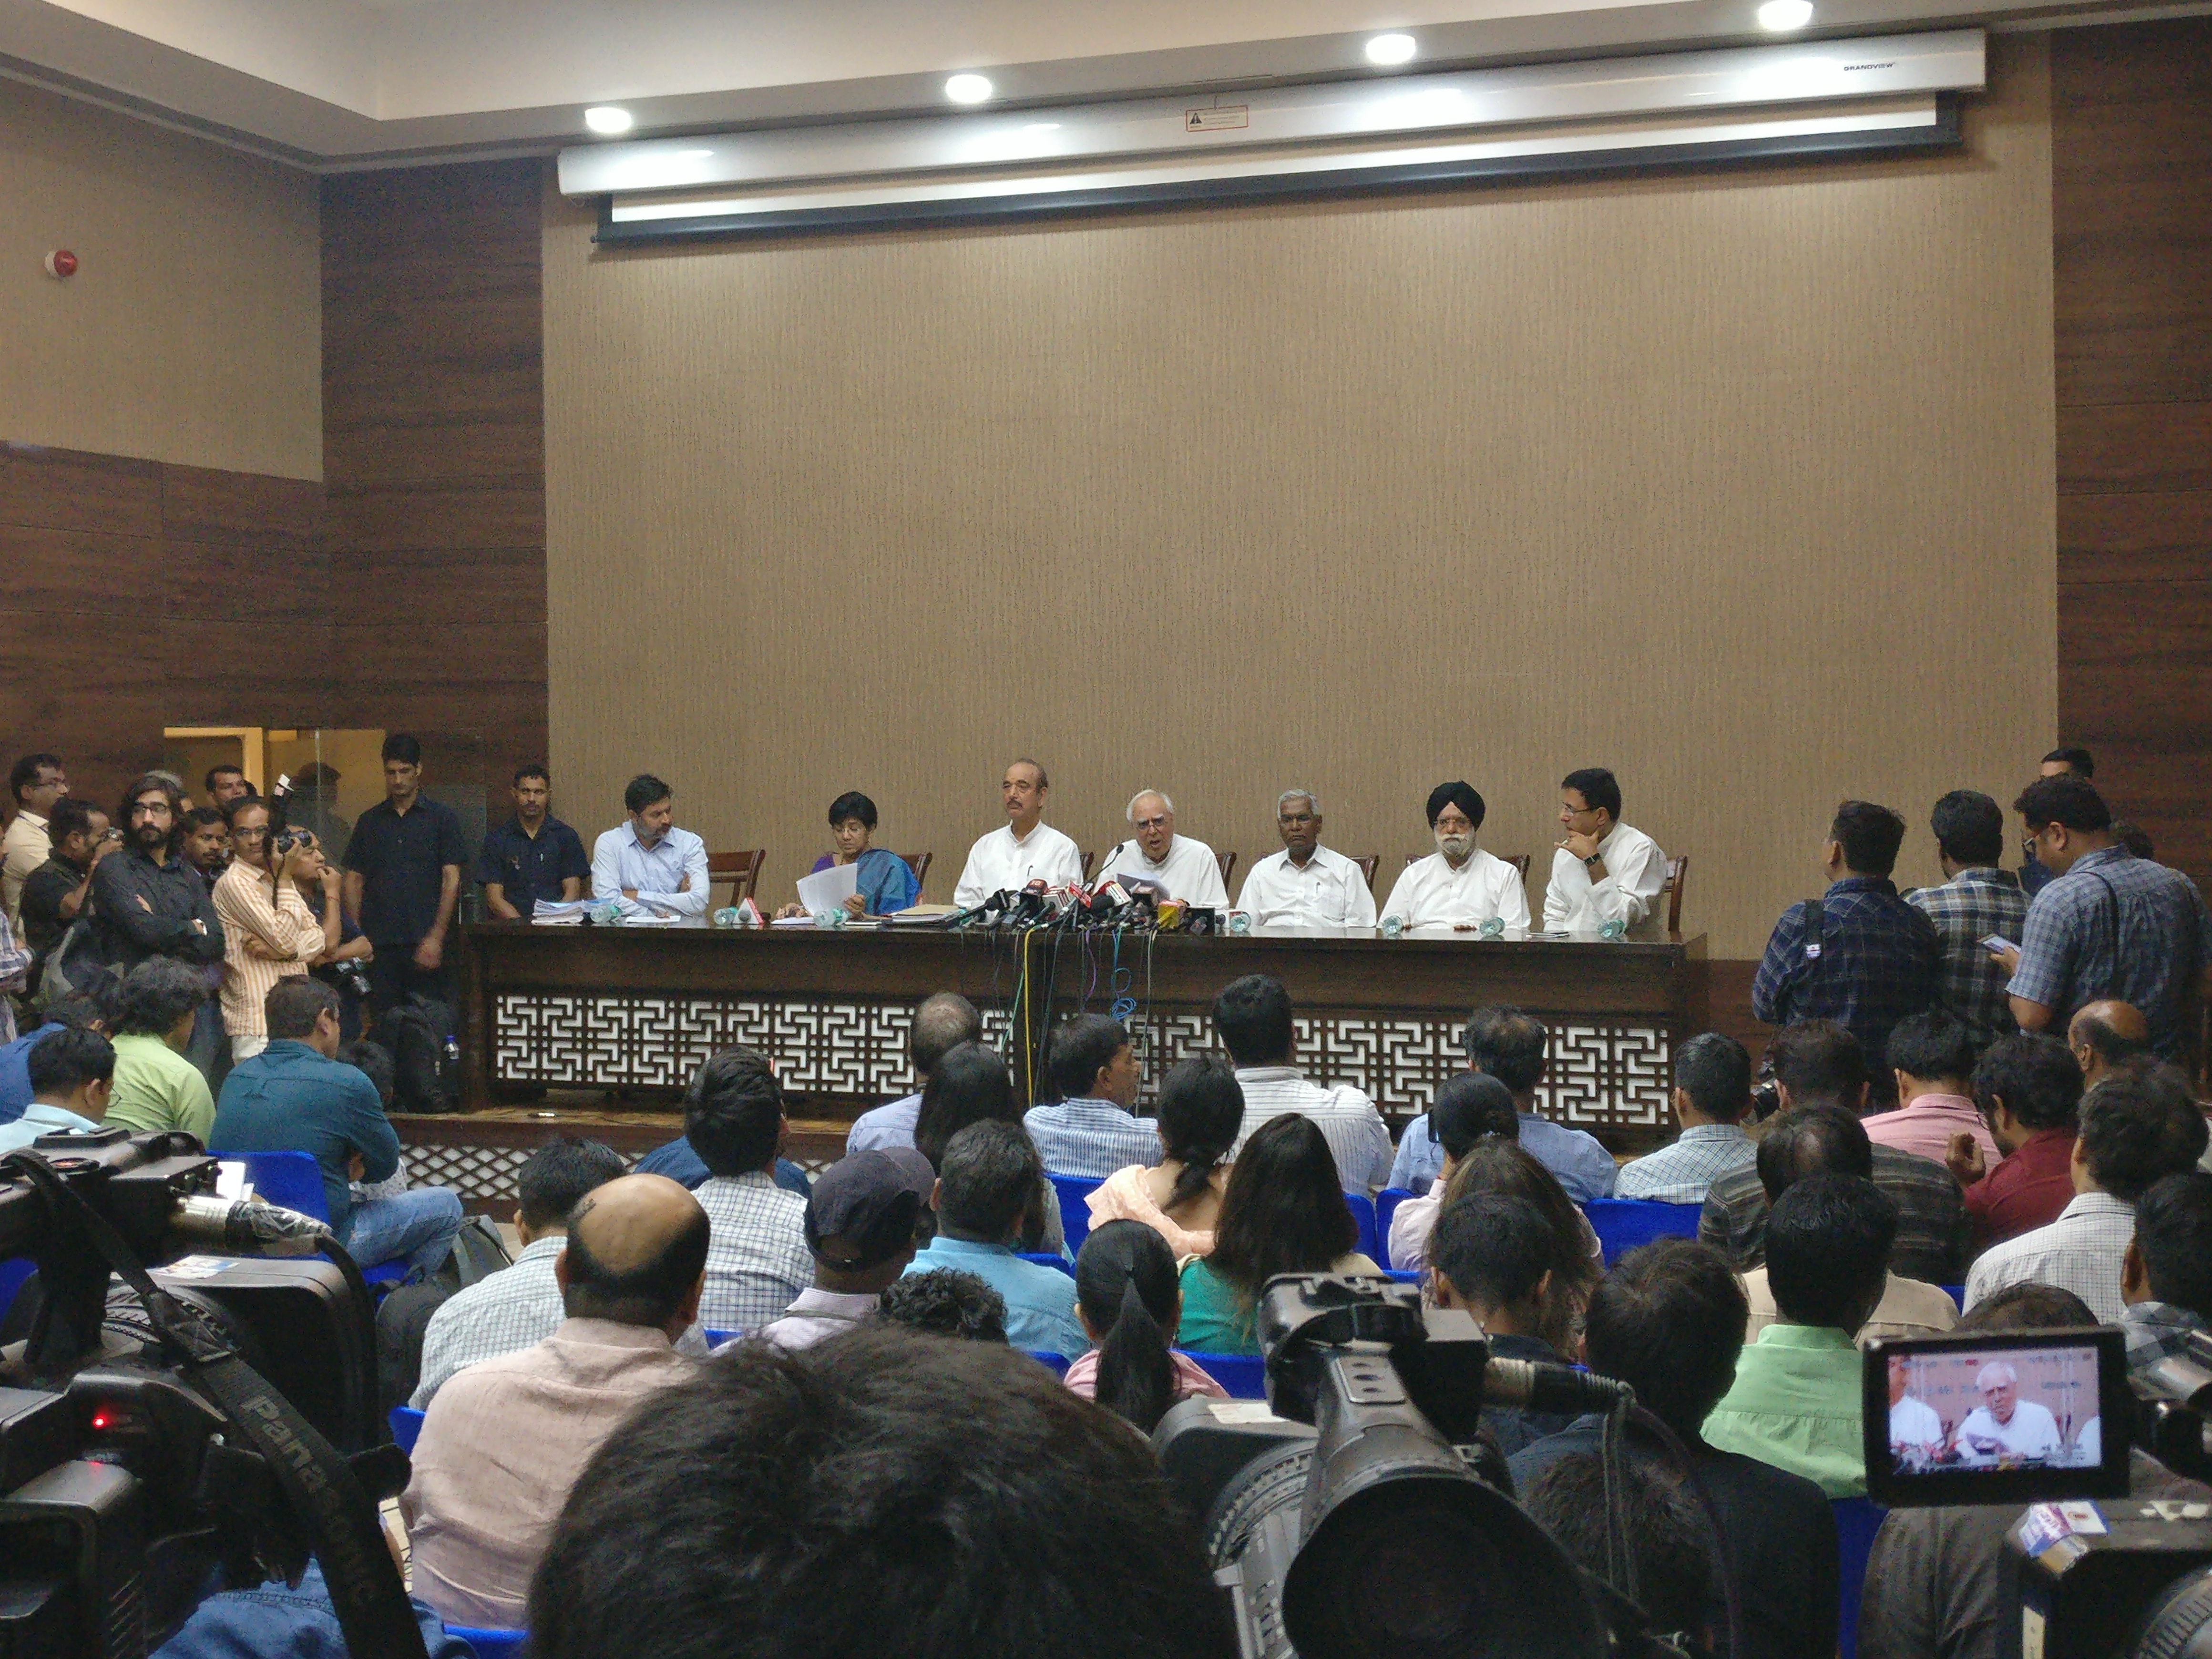 Opposition leaders at the press conference in New Delhi on Friday | Credit: Rohan V/Scroll.in